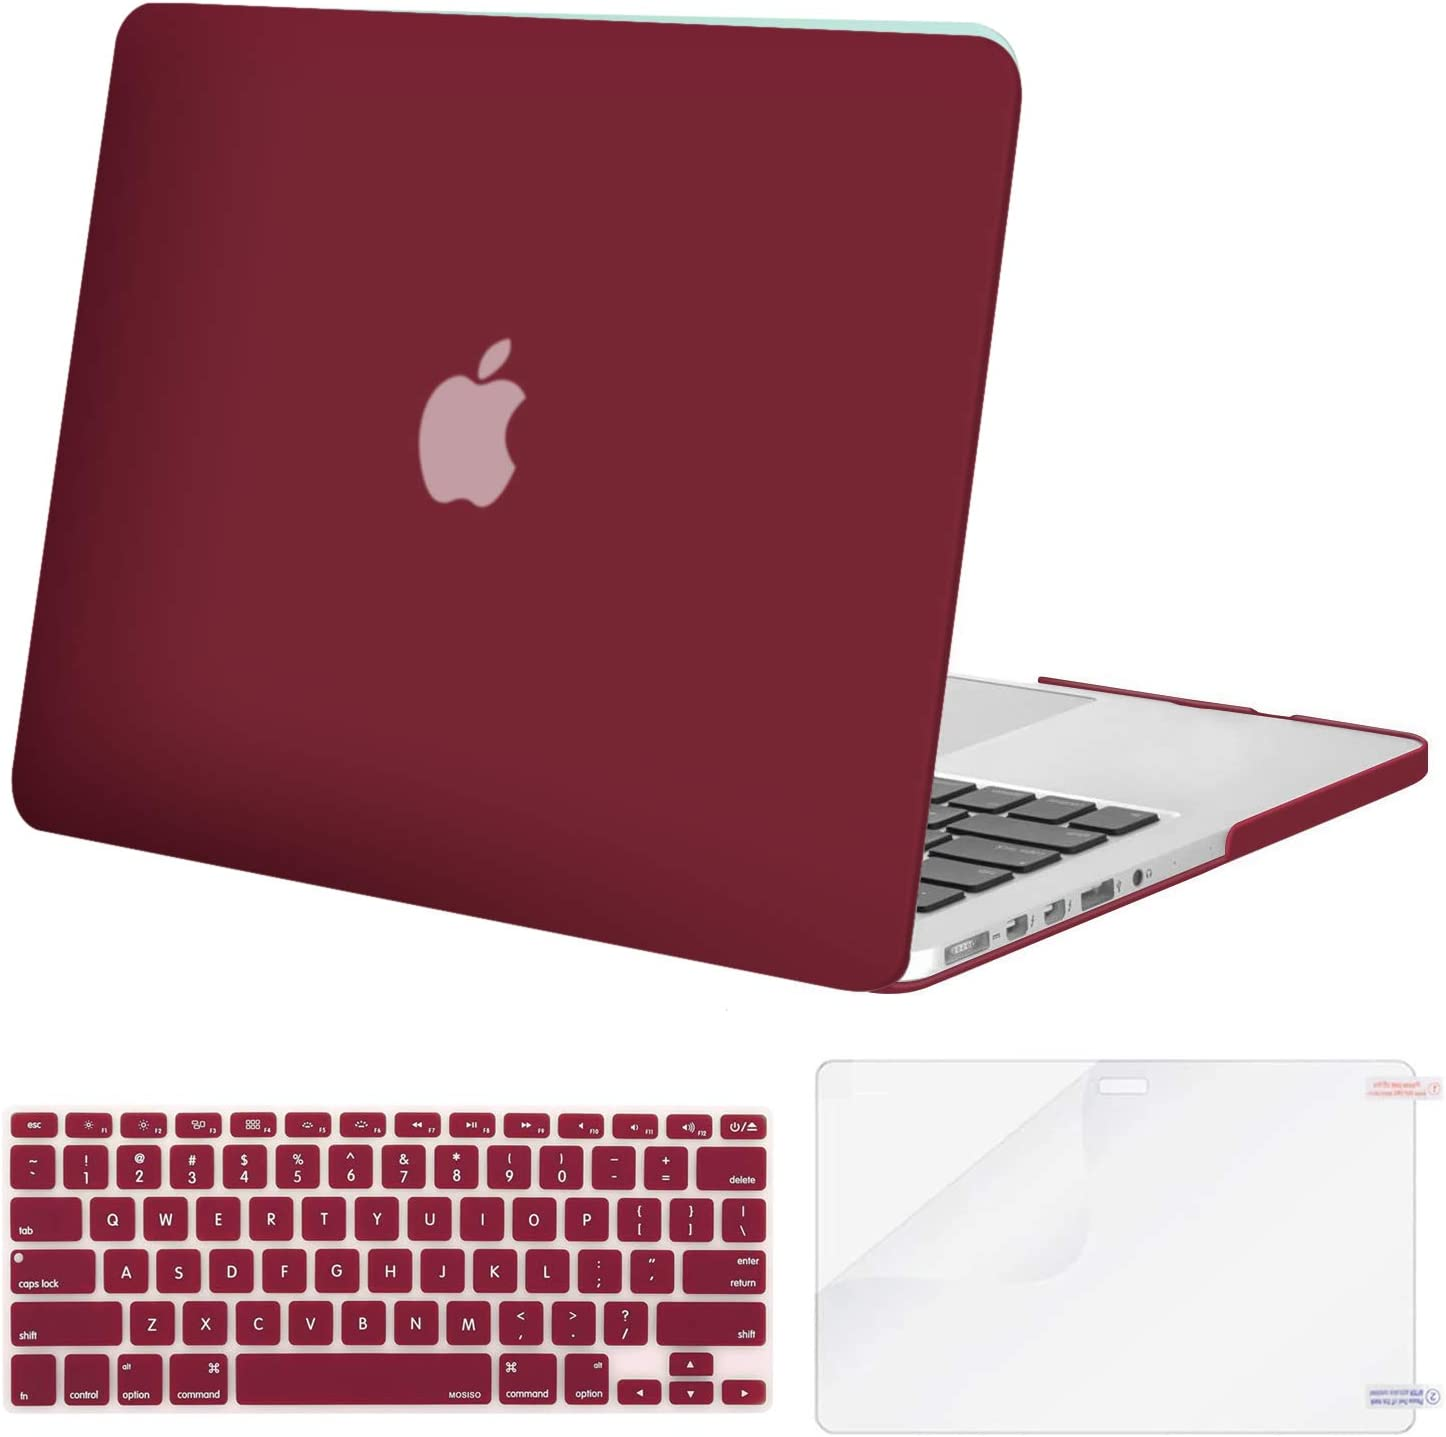 MOSISO Case Only Compatible with Older Version MacBook Pro Retina 13 inch (Models: A1502 & A1425) (Release 2015 - end 2012), Plastic Hard Shell Case & Keyboard Cover & Screen Protector, Wine Red